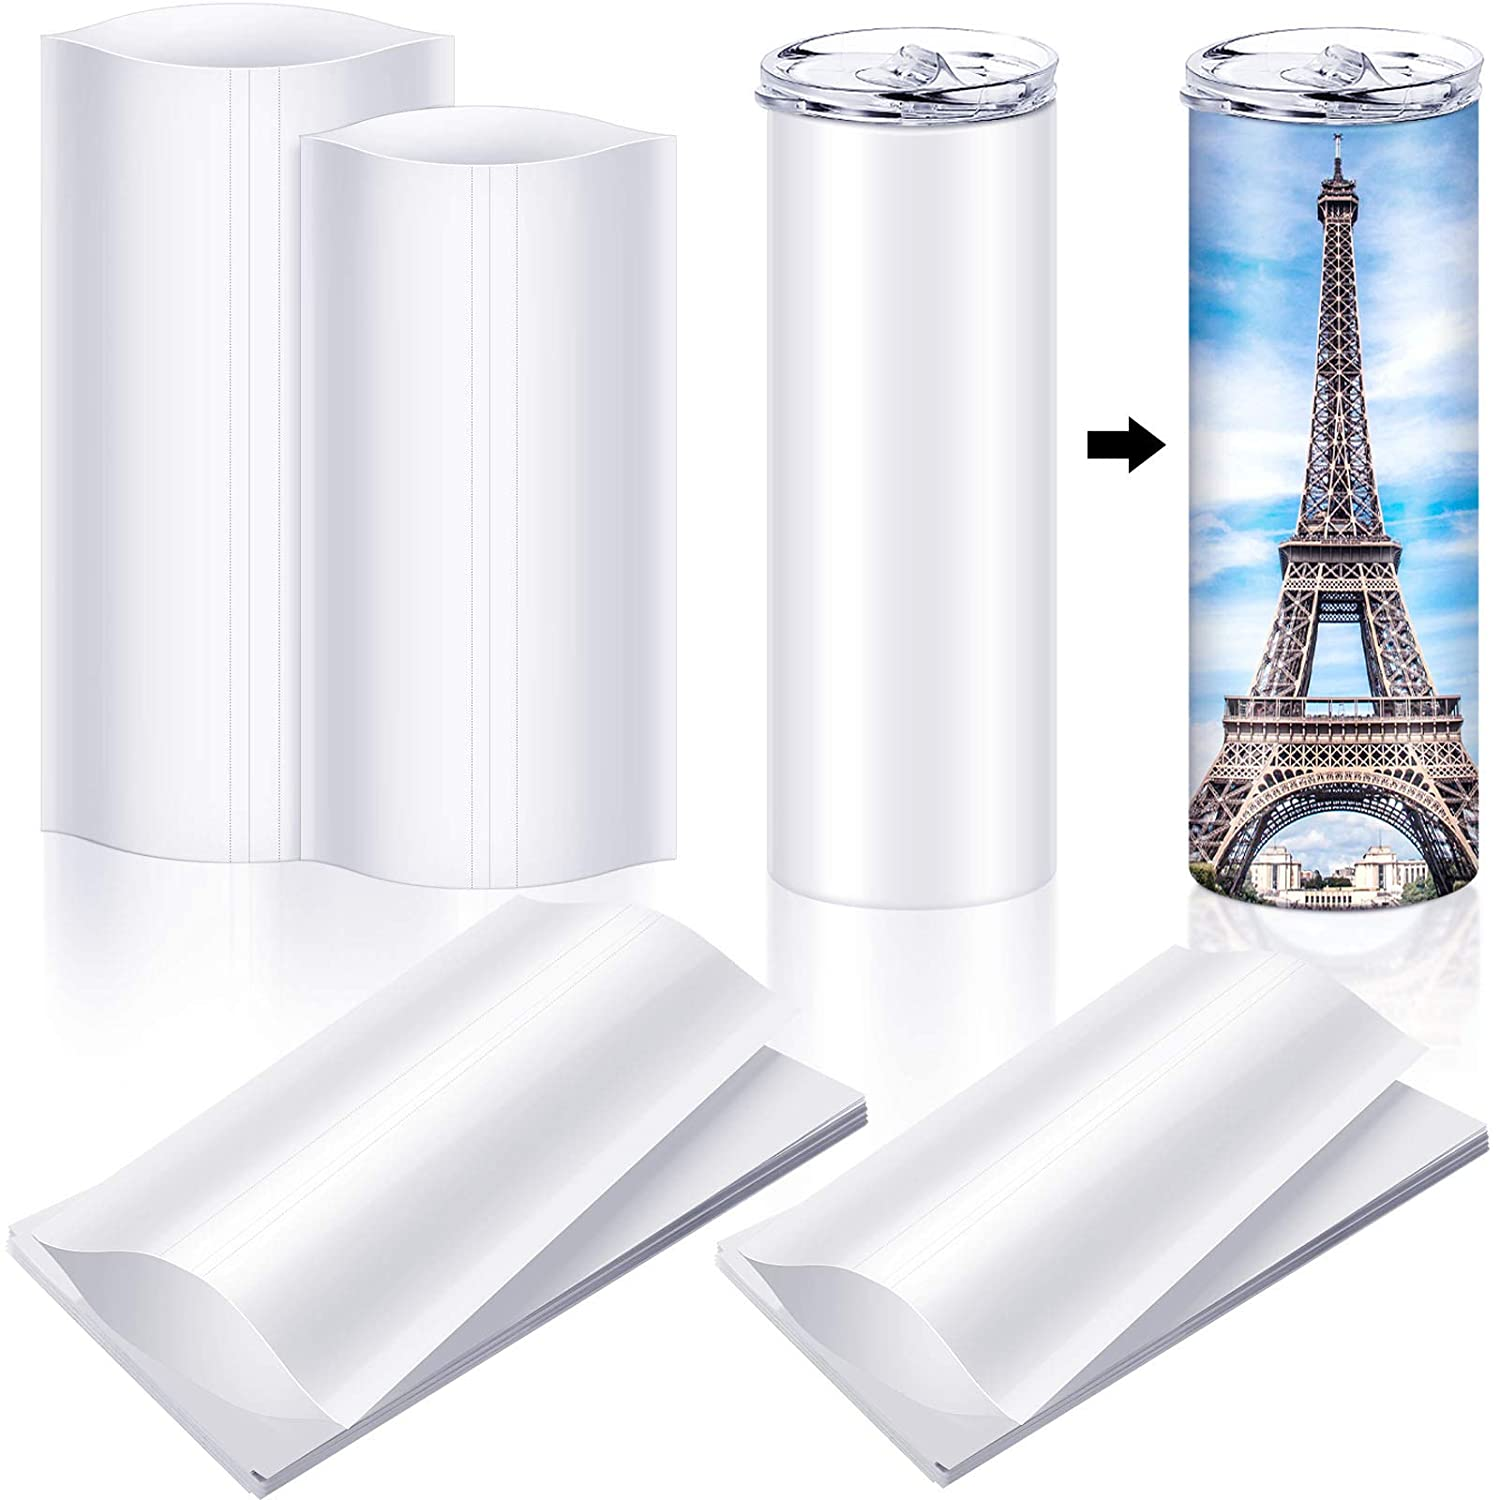 Chrisfall 60 Pieces Sublimation Shrink Wrap Film 2 Different Siz